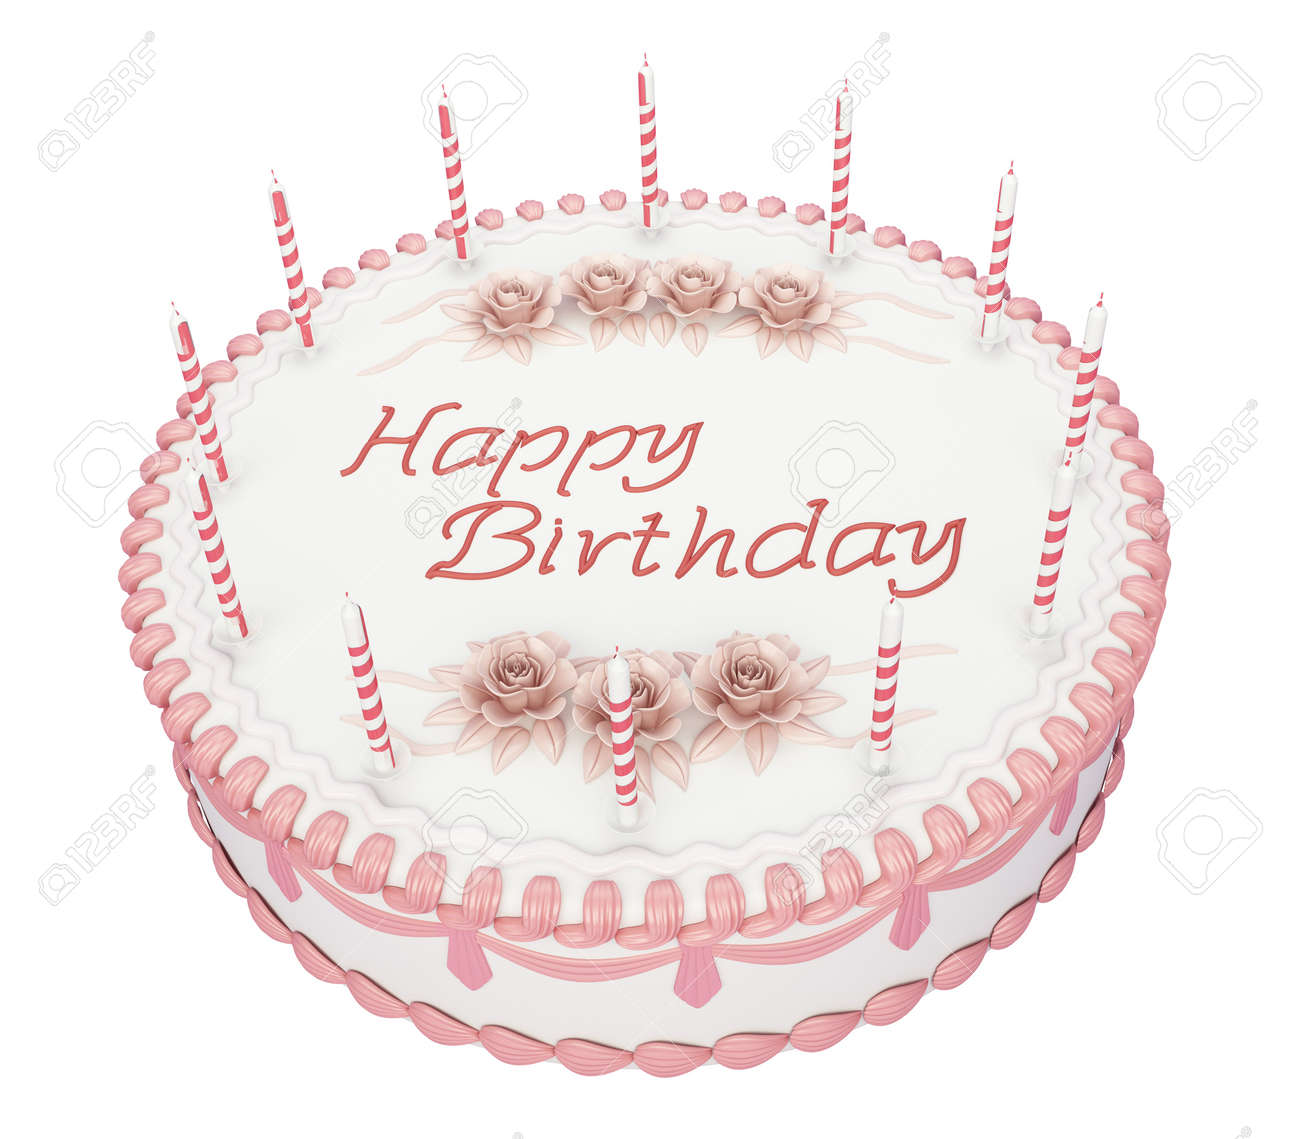 Birthday Cake With Candles And Roses With Greetings Words Stock